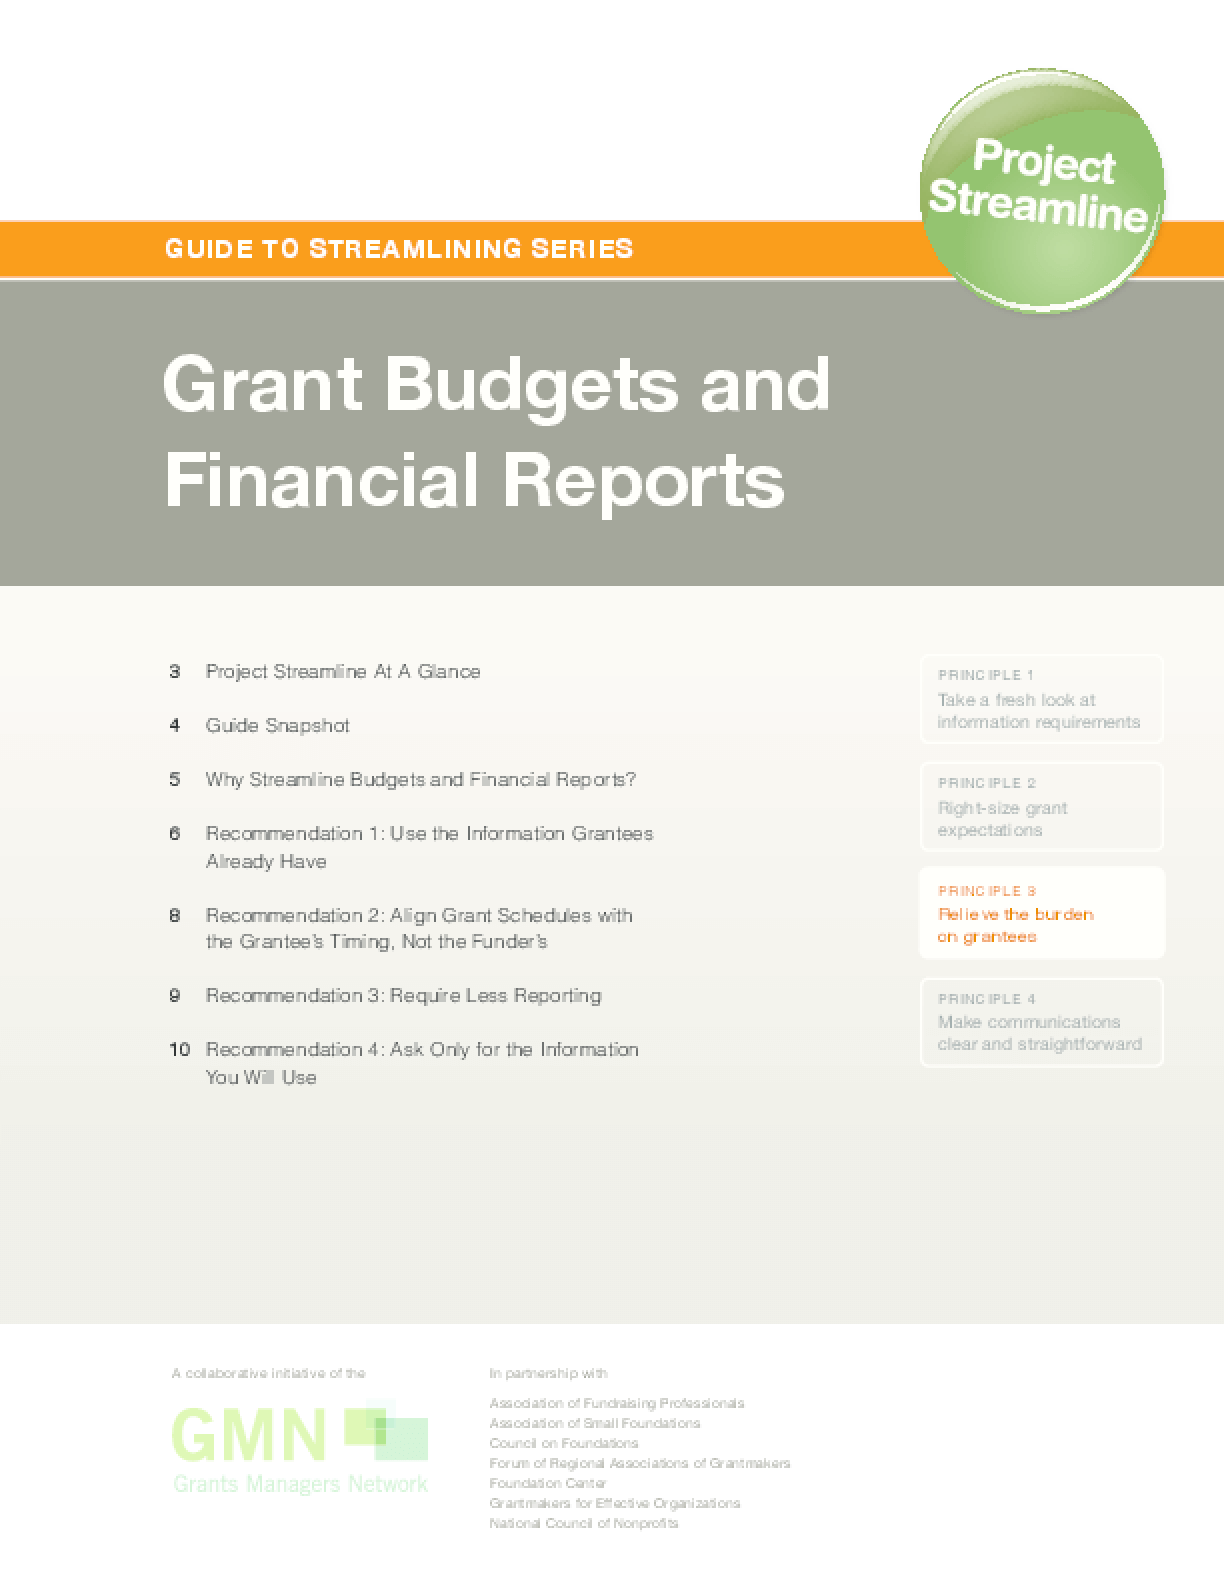 Guide to Streamlining Series: Grant Budgets and Financial Reports